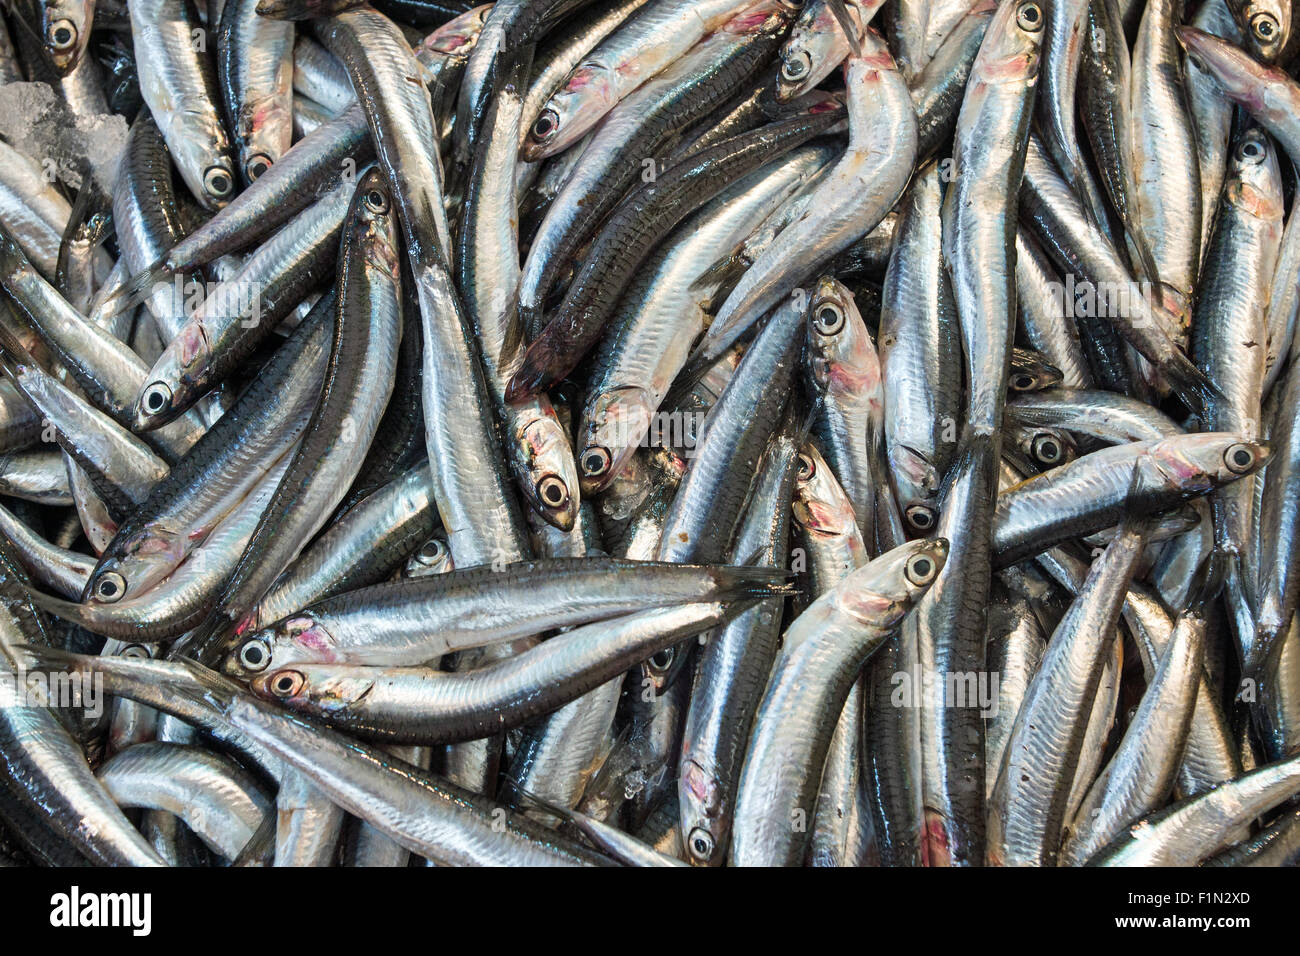 Anchovies for sale on the fish market - Stock Image